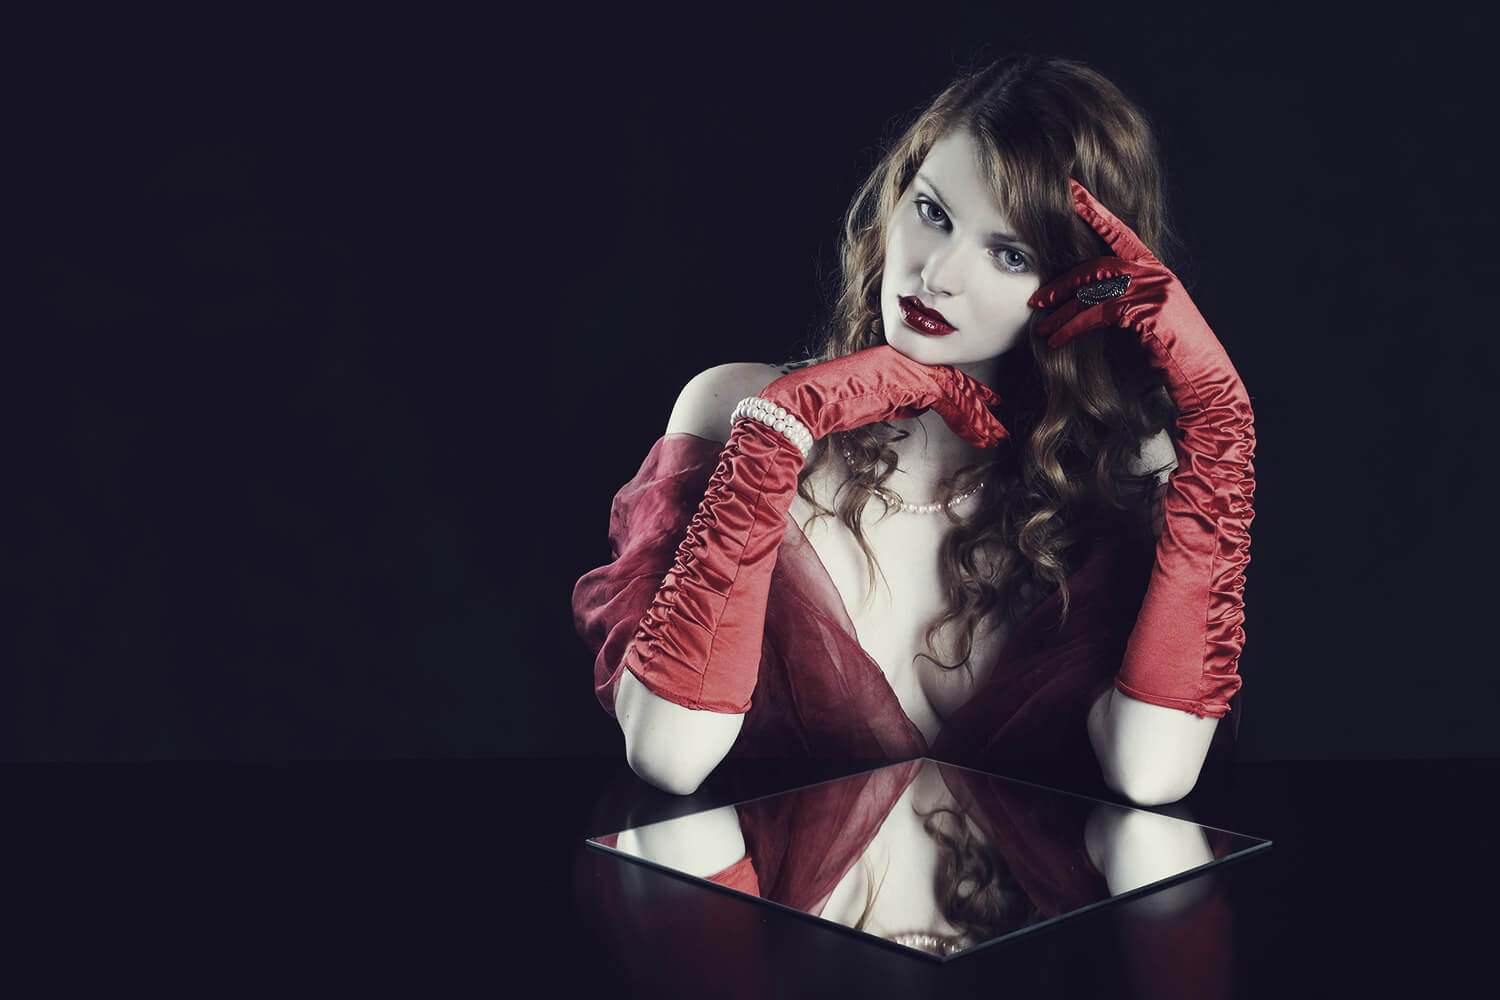 boudoir photo of a woman with a red cloth and gloves on a dark background